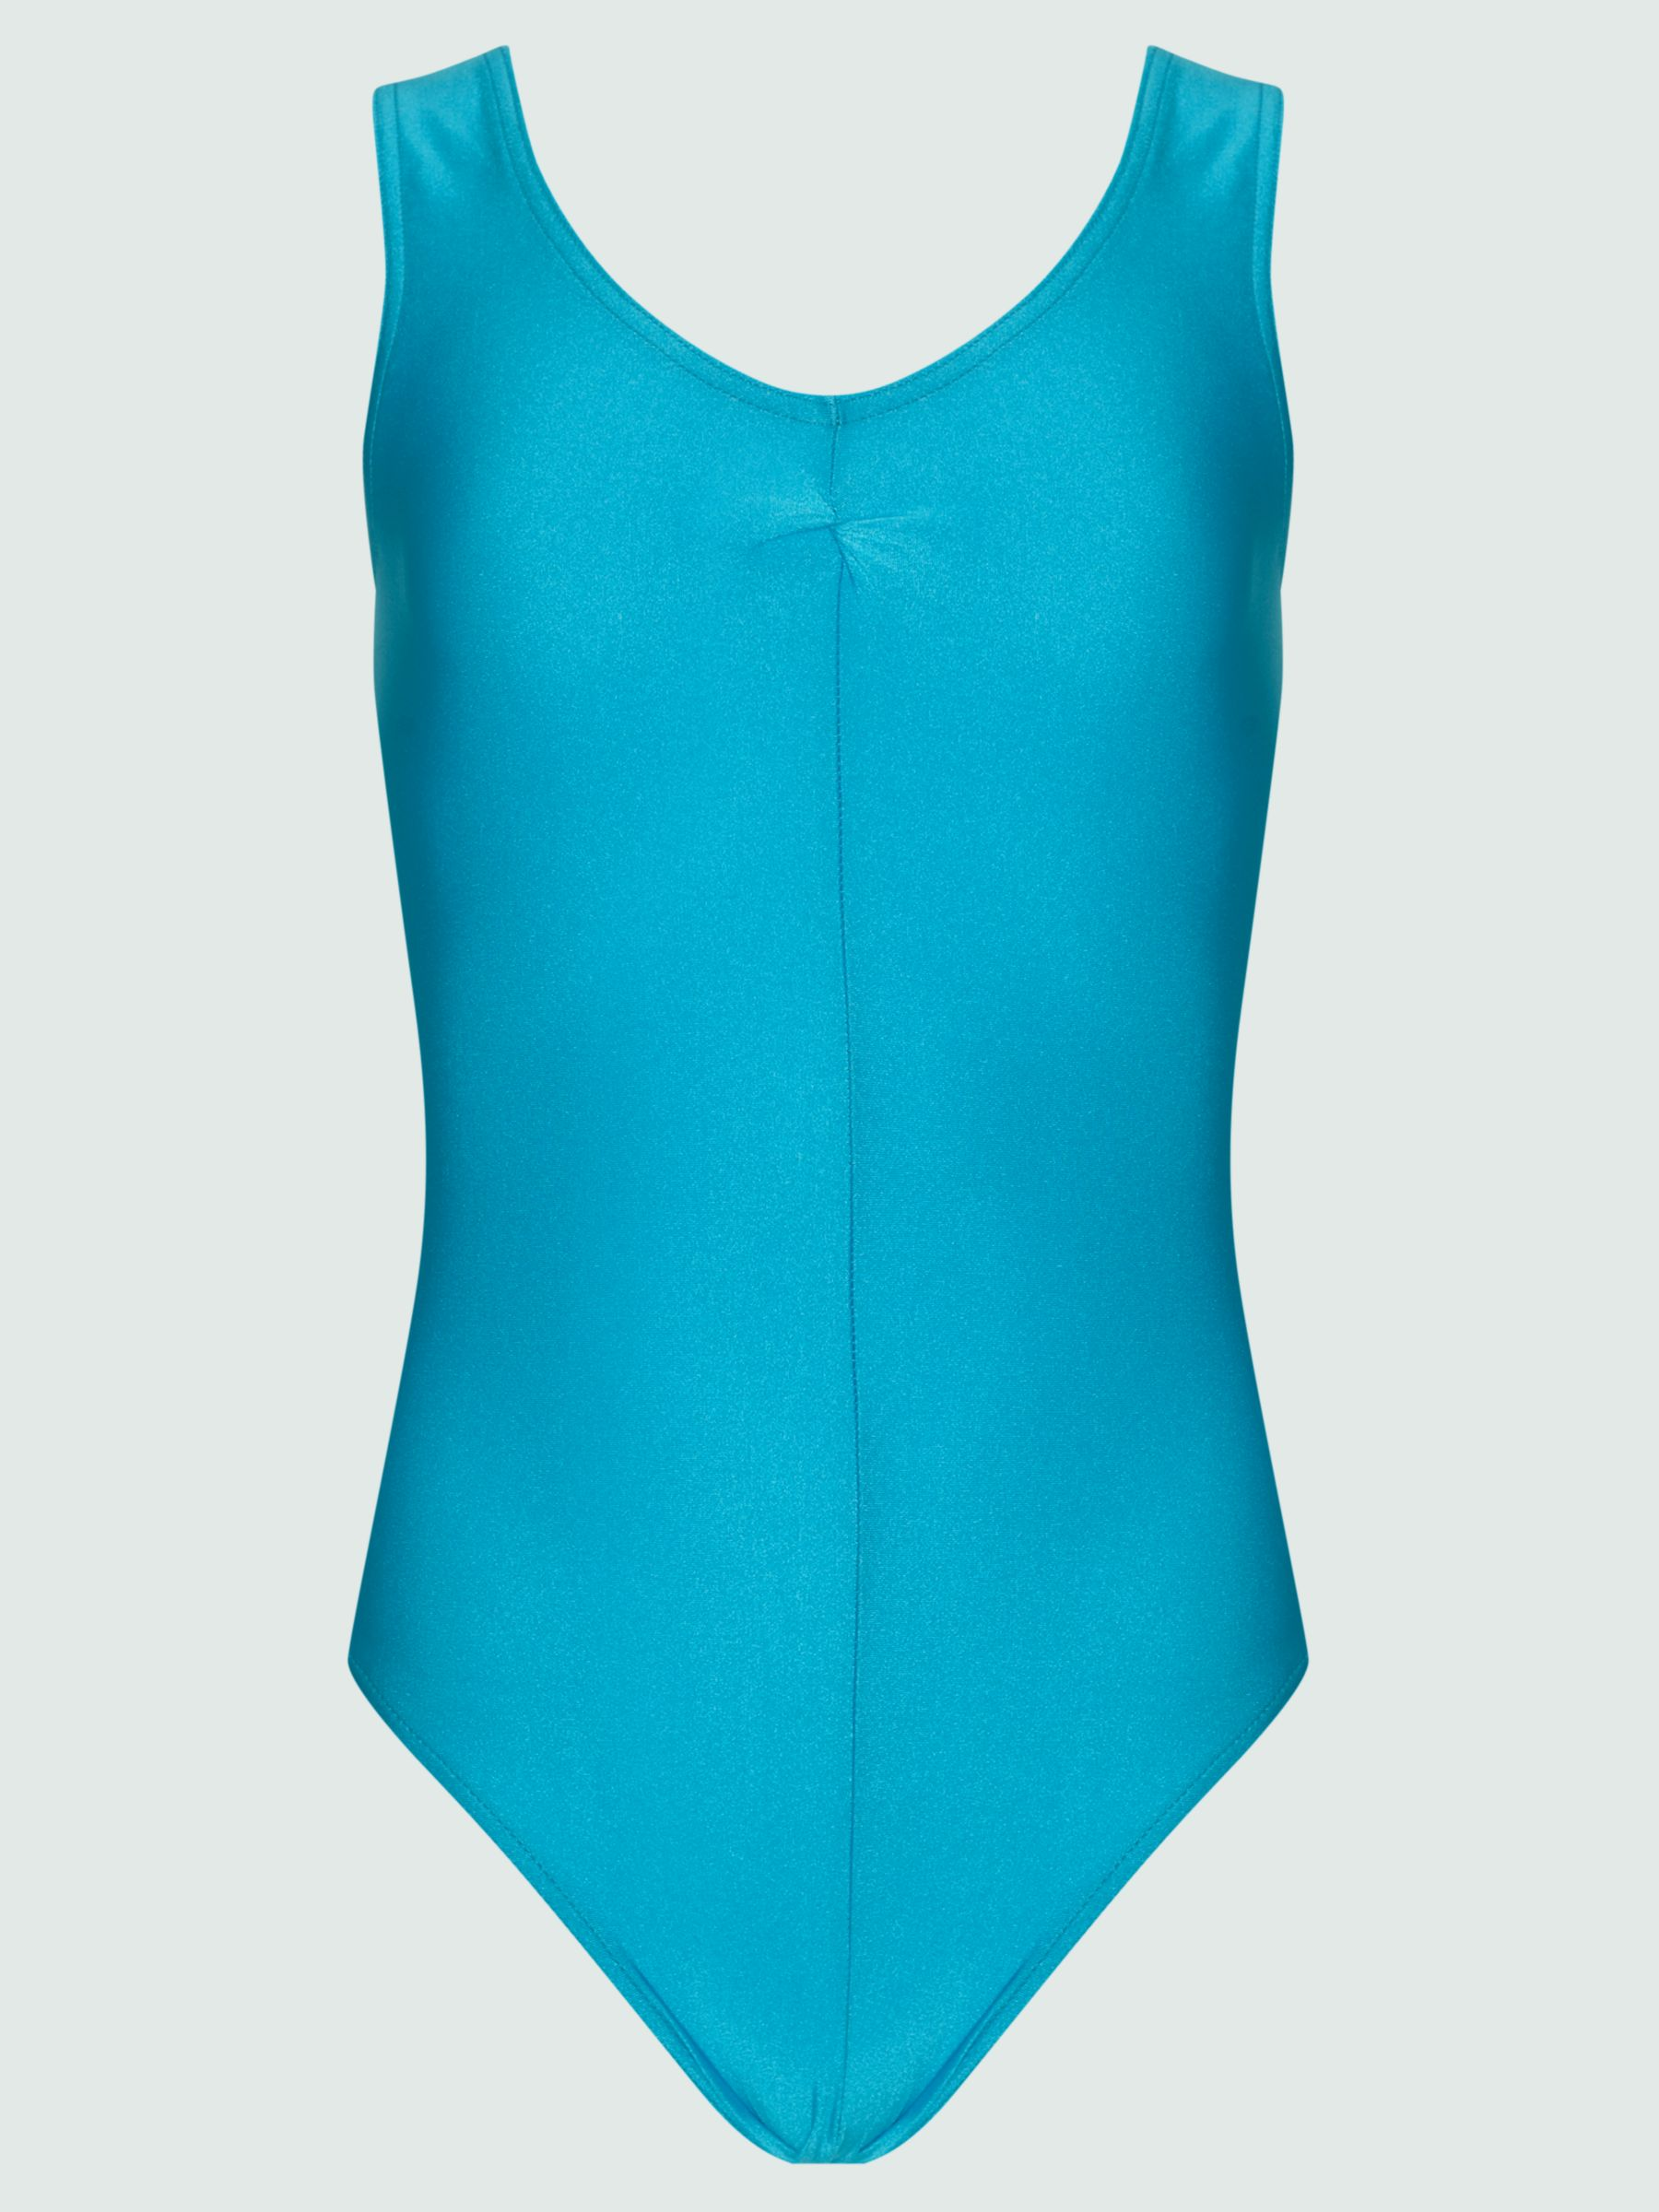 Tappers and Pointers Tappers and Pointers Sleeveless Ruched Leotard